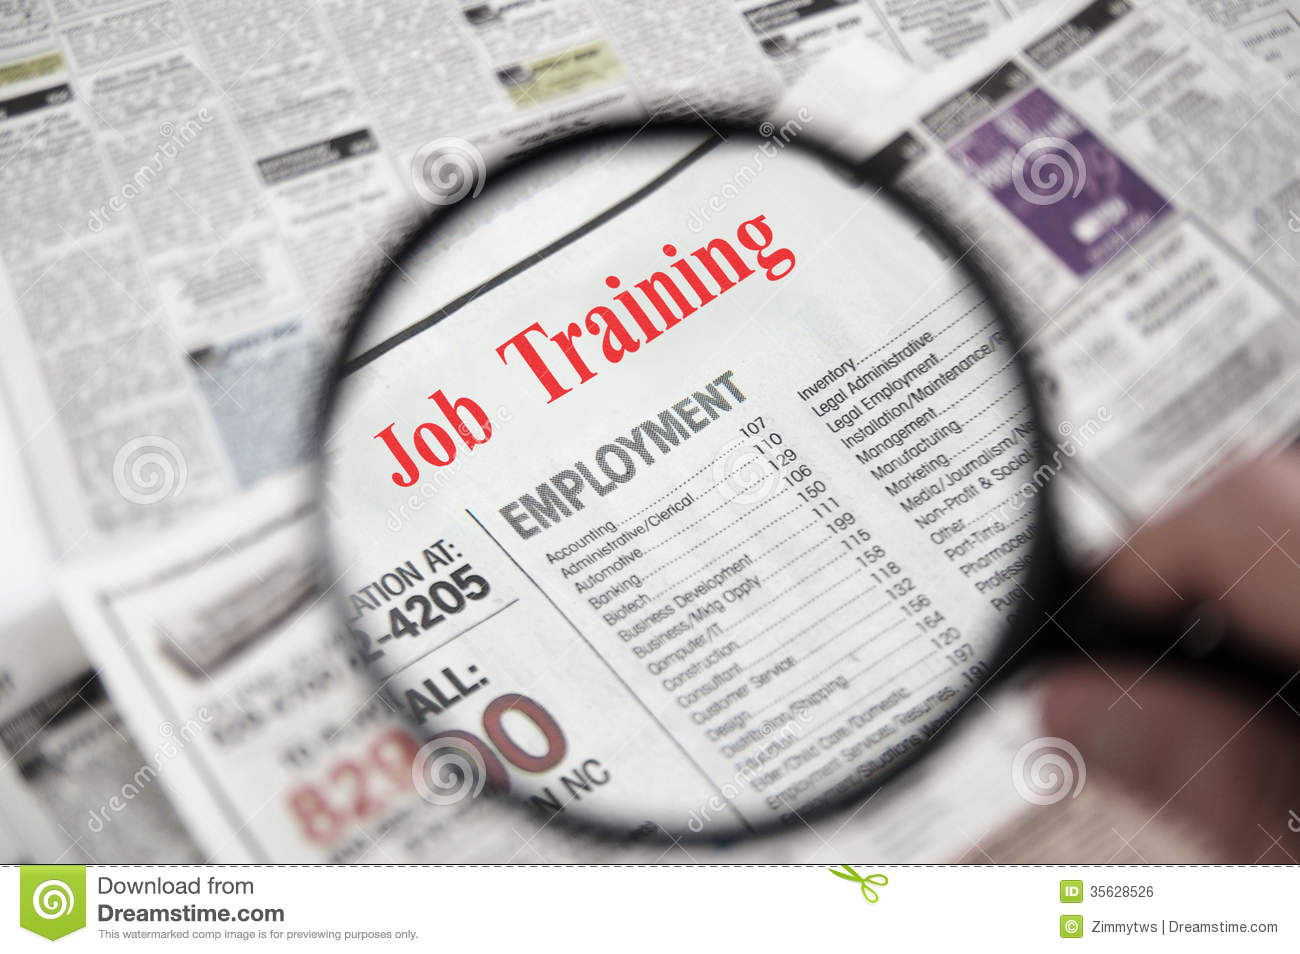 on job training Performance reviews are implemented in most workplaces these days and they are designed to look at how you are doing in your role and whether there are any areas of development or training you may need.